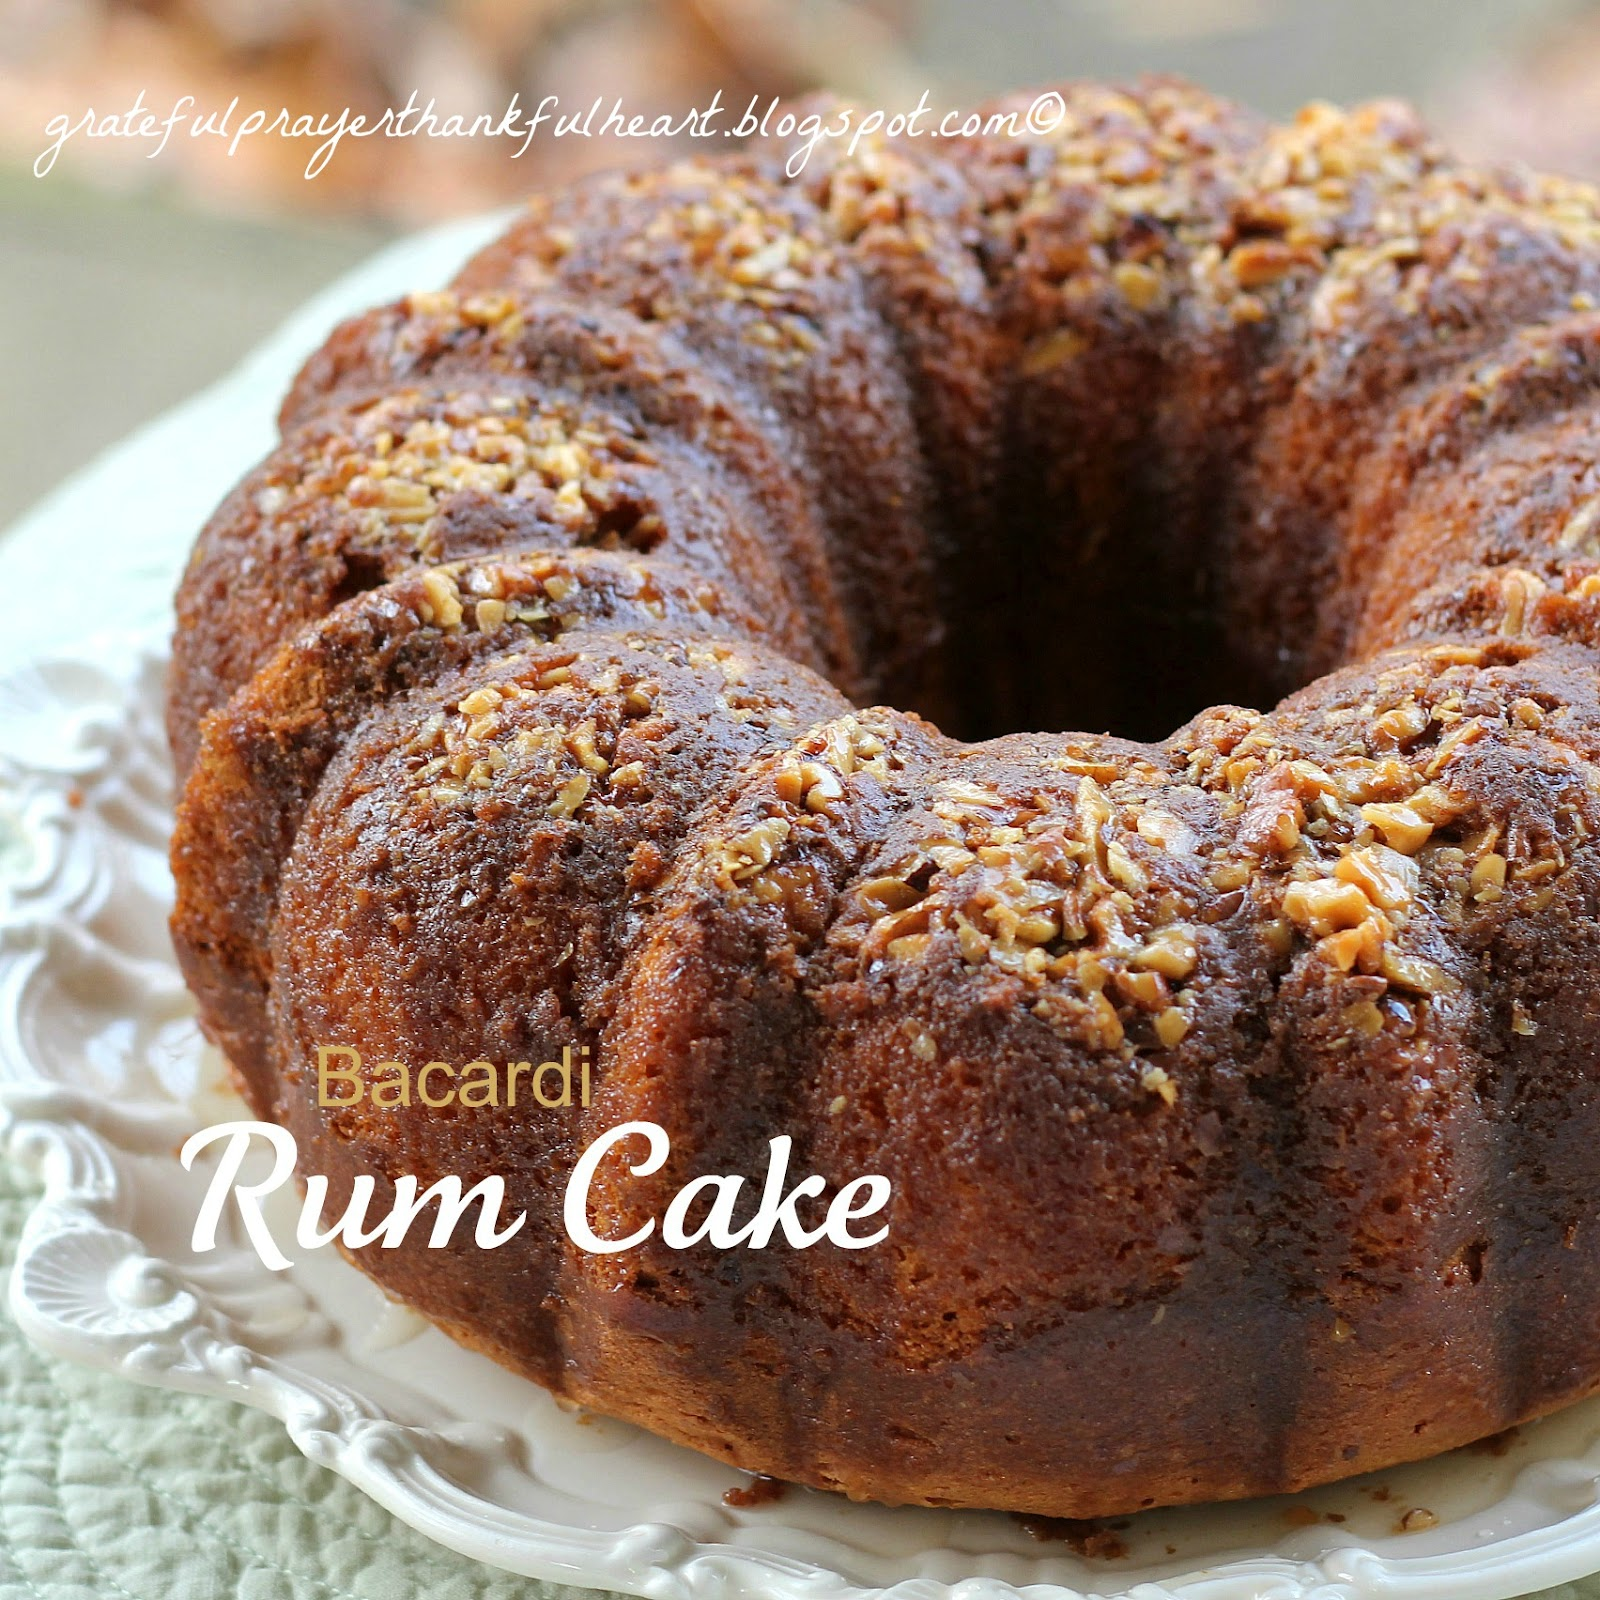 With a Grateful Prayer and a Thankful Heart: Bacardi Rum Cake